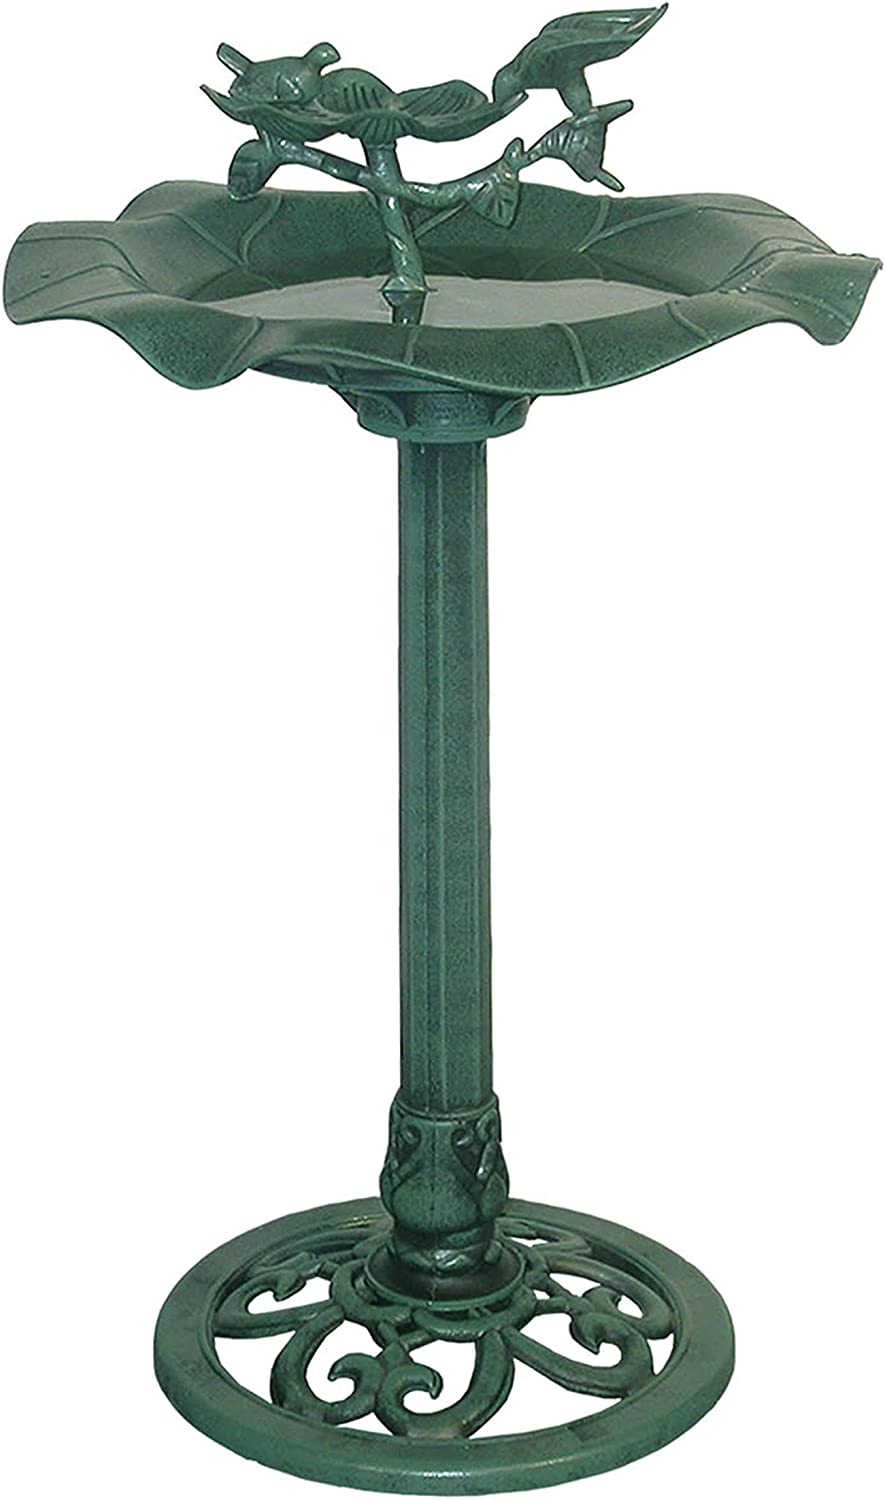 "Alpine Corporation 33"" Tall Outdoor Lotus Birdbath Yard Statue, Green"